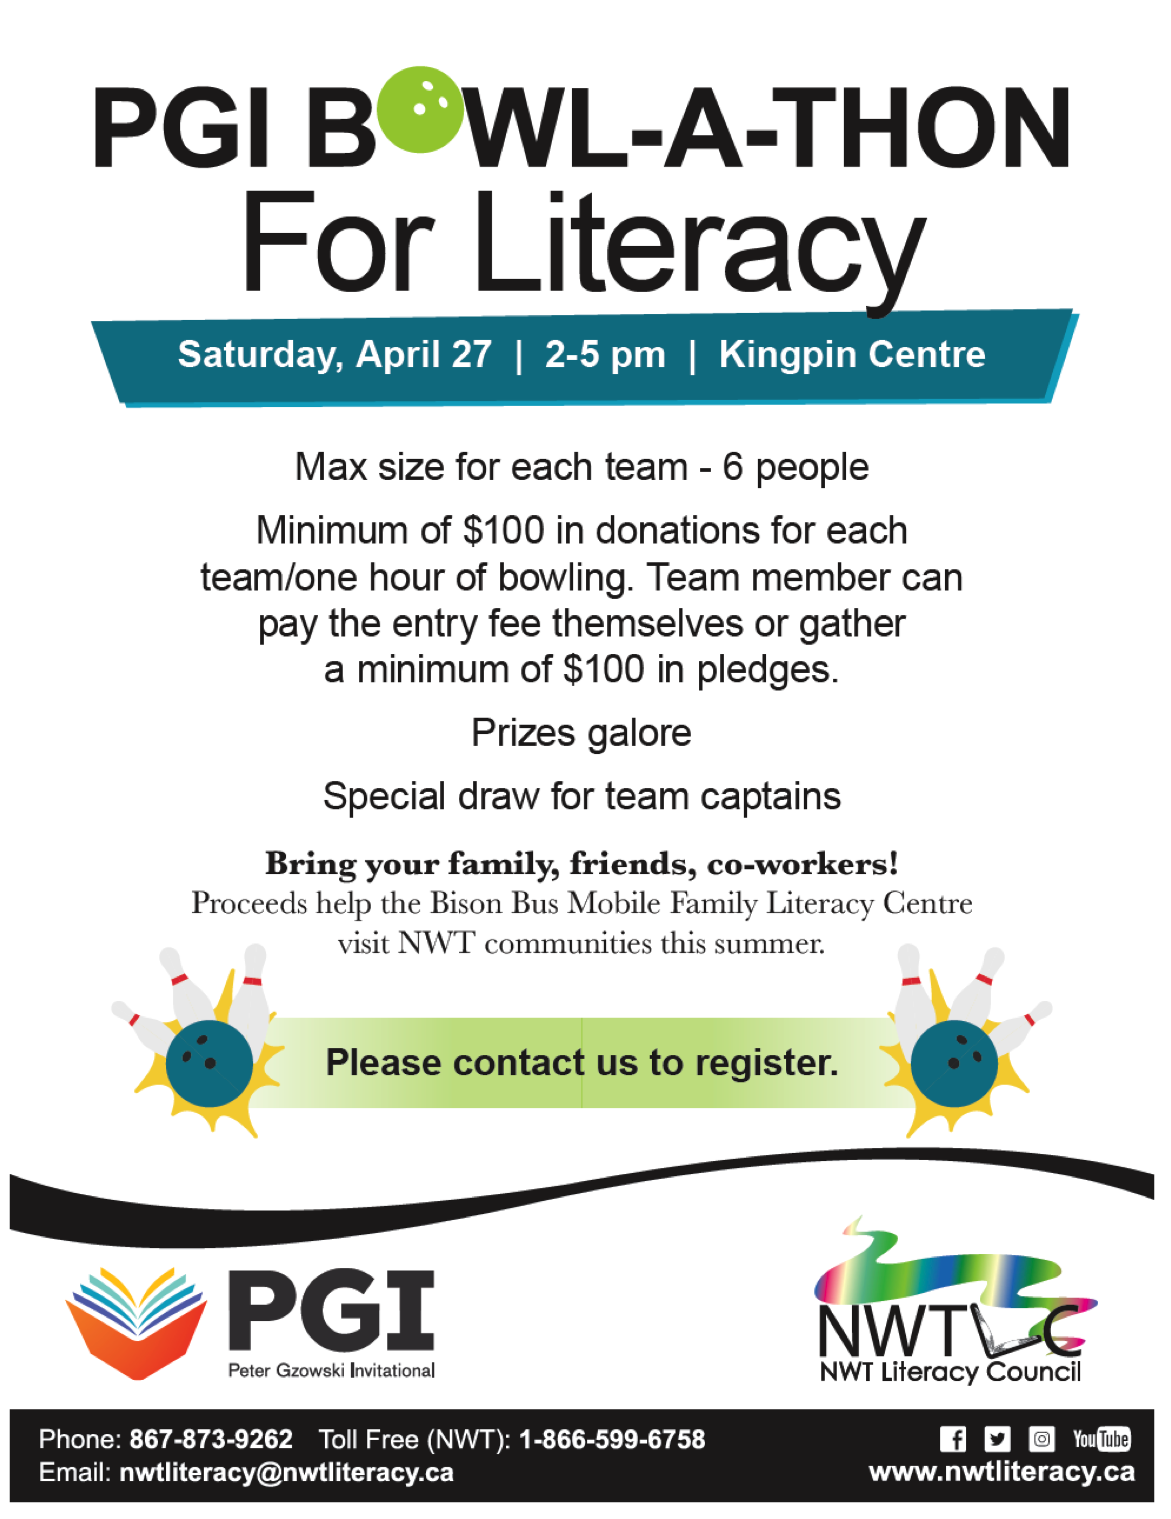 PGI Bowl-a-Thon for Literacy